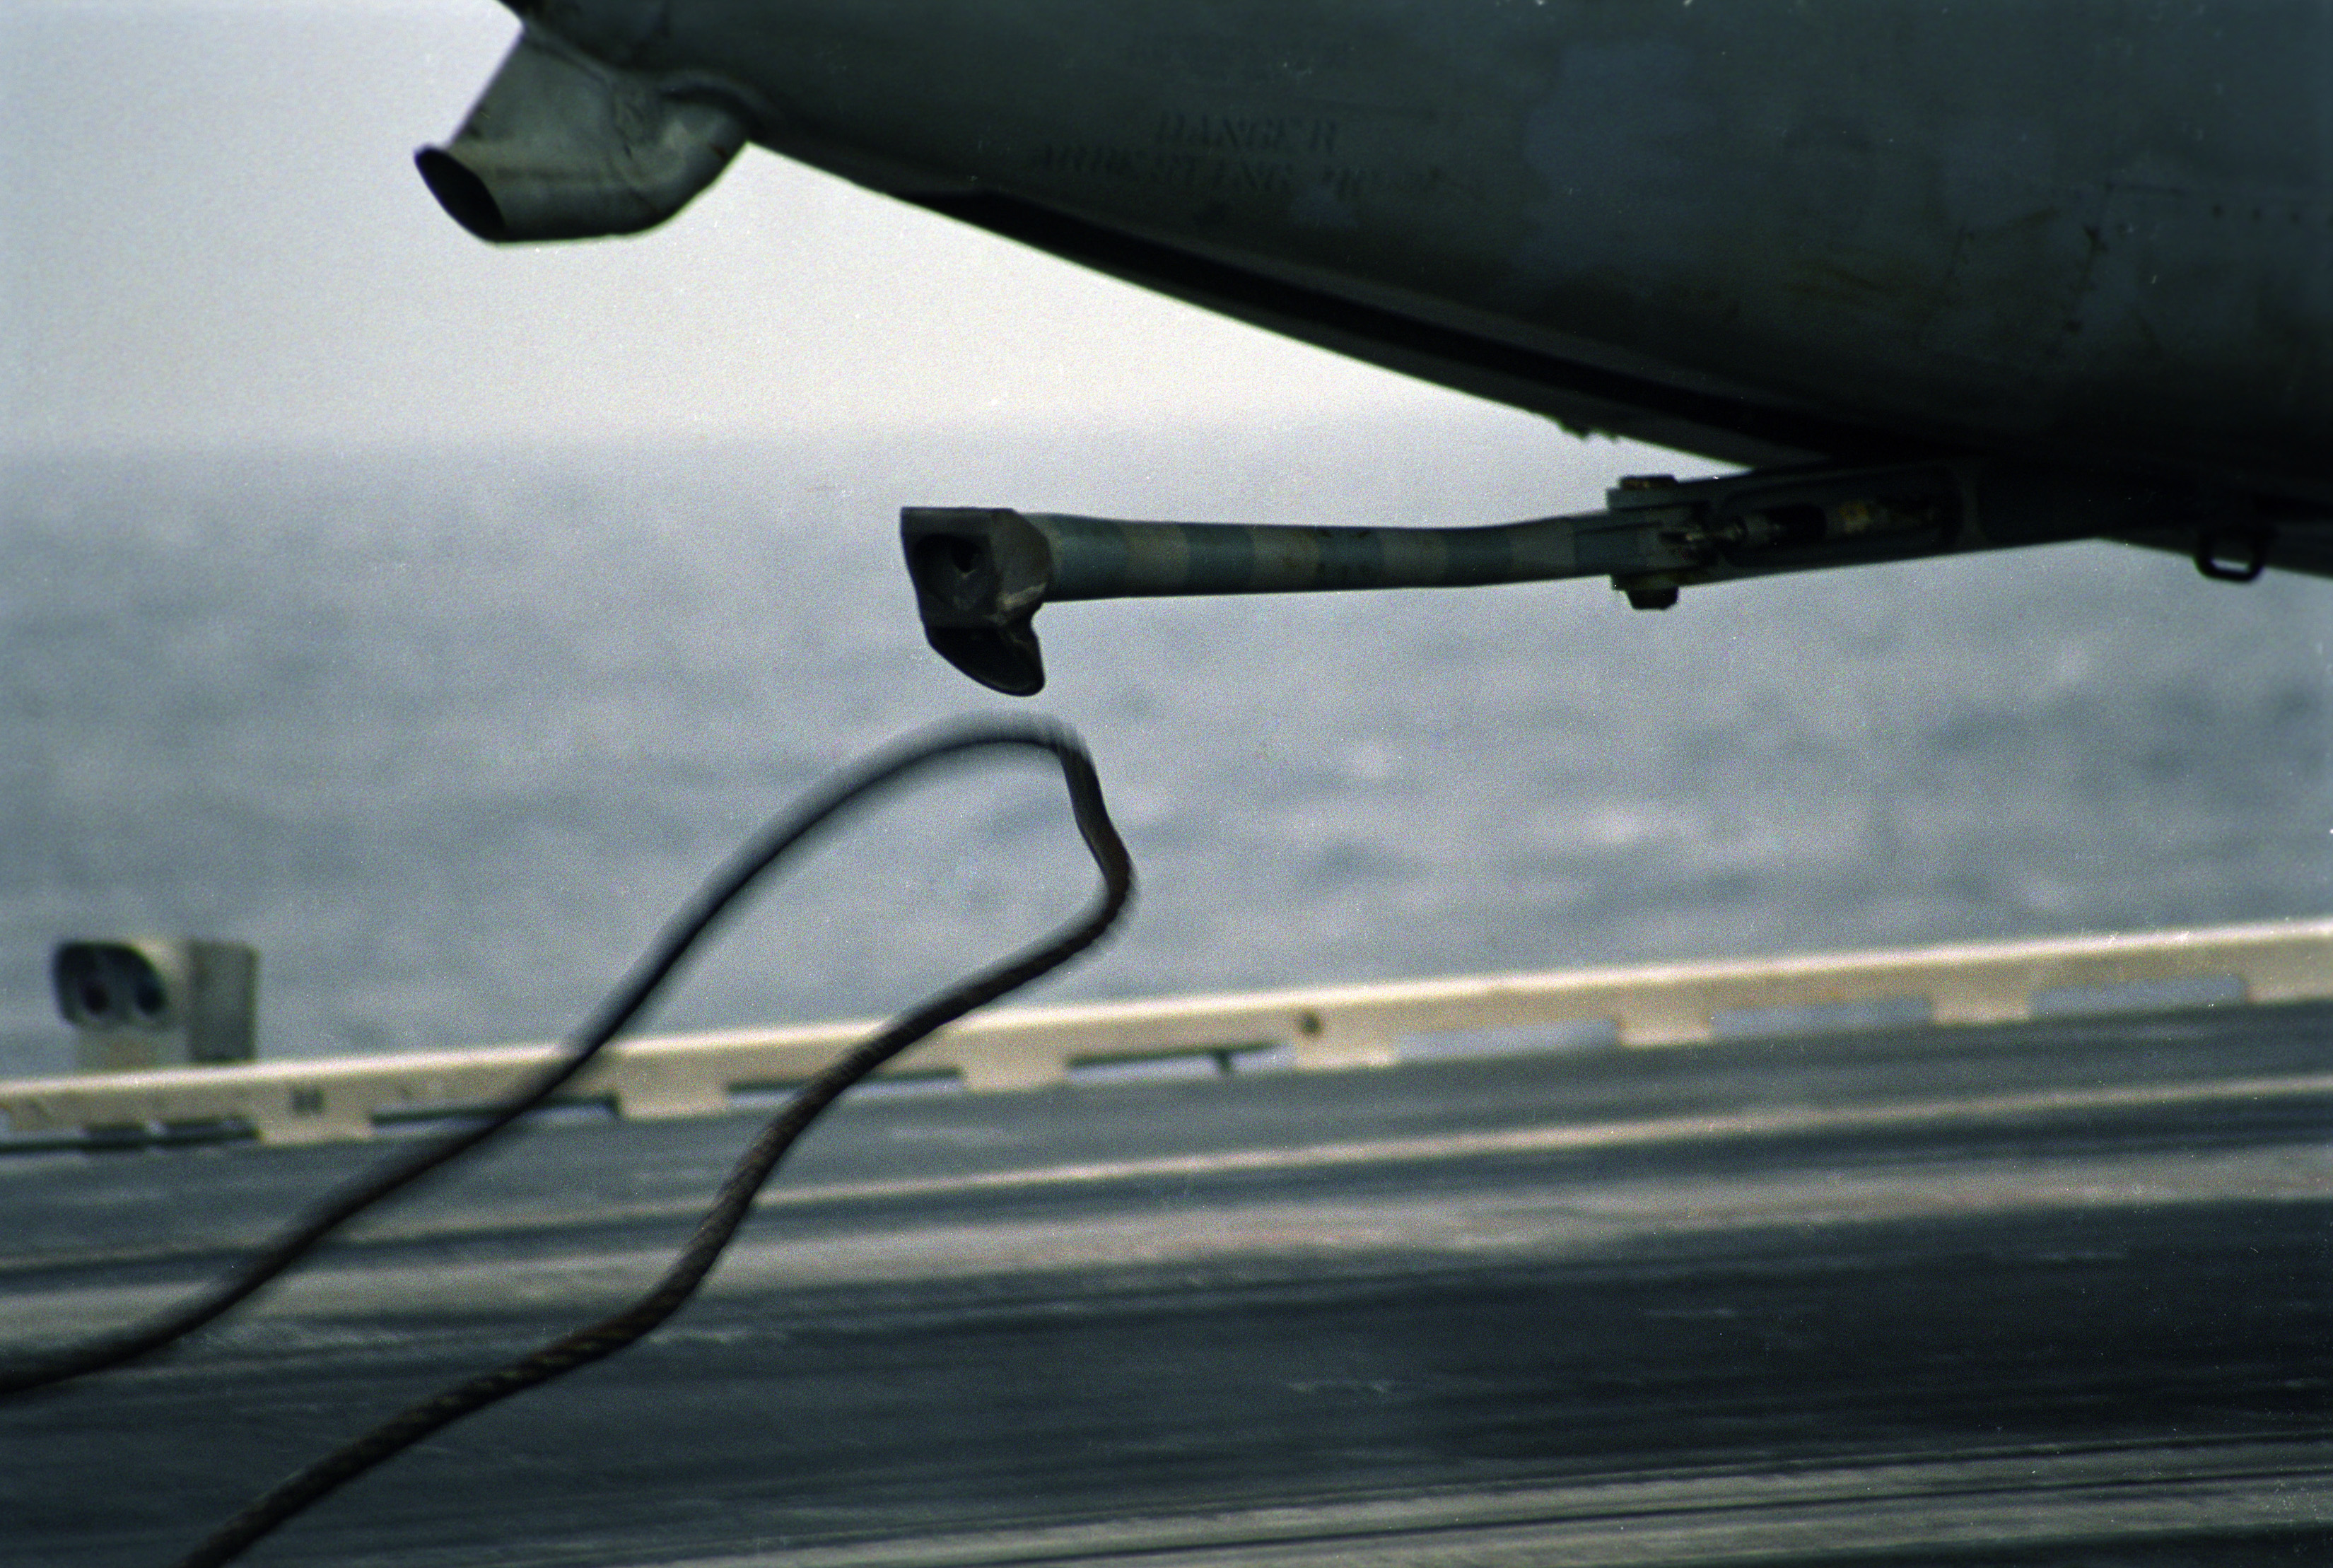 control airplane with File Us Navy 010816 N 0295m 003 An Arresting Wire Falls Away From An S 3b Viking's Tail Hook As It Stops After Landing Aboard The Aircraft Carrier Uss Constellation  Cv 64 on P1000 Ratte Turret Interior also Raf English Electric Canberra B2 Aircraft Control Column Stick Grip Yoke Ee together with File us navy 010816 N 0295m 003 an arresting wire falls away from an s 3b viking's tail hook as it stops after landing aboard the aircraft carrier uss constellation  cv 64 likewise Adelte Boarding Bridge furthermore Mechanical Questions 101.